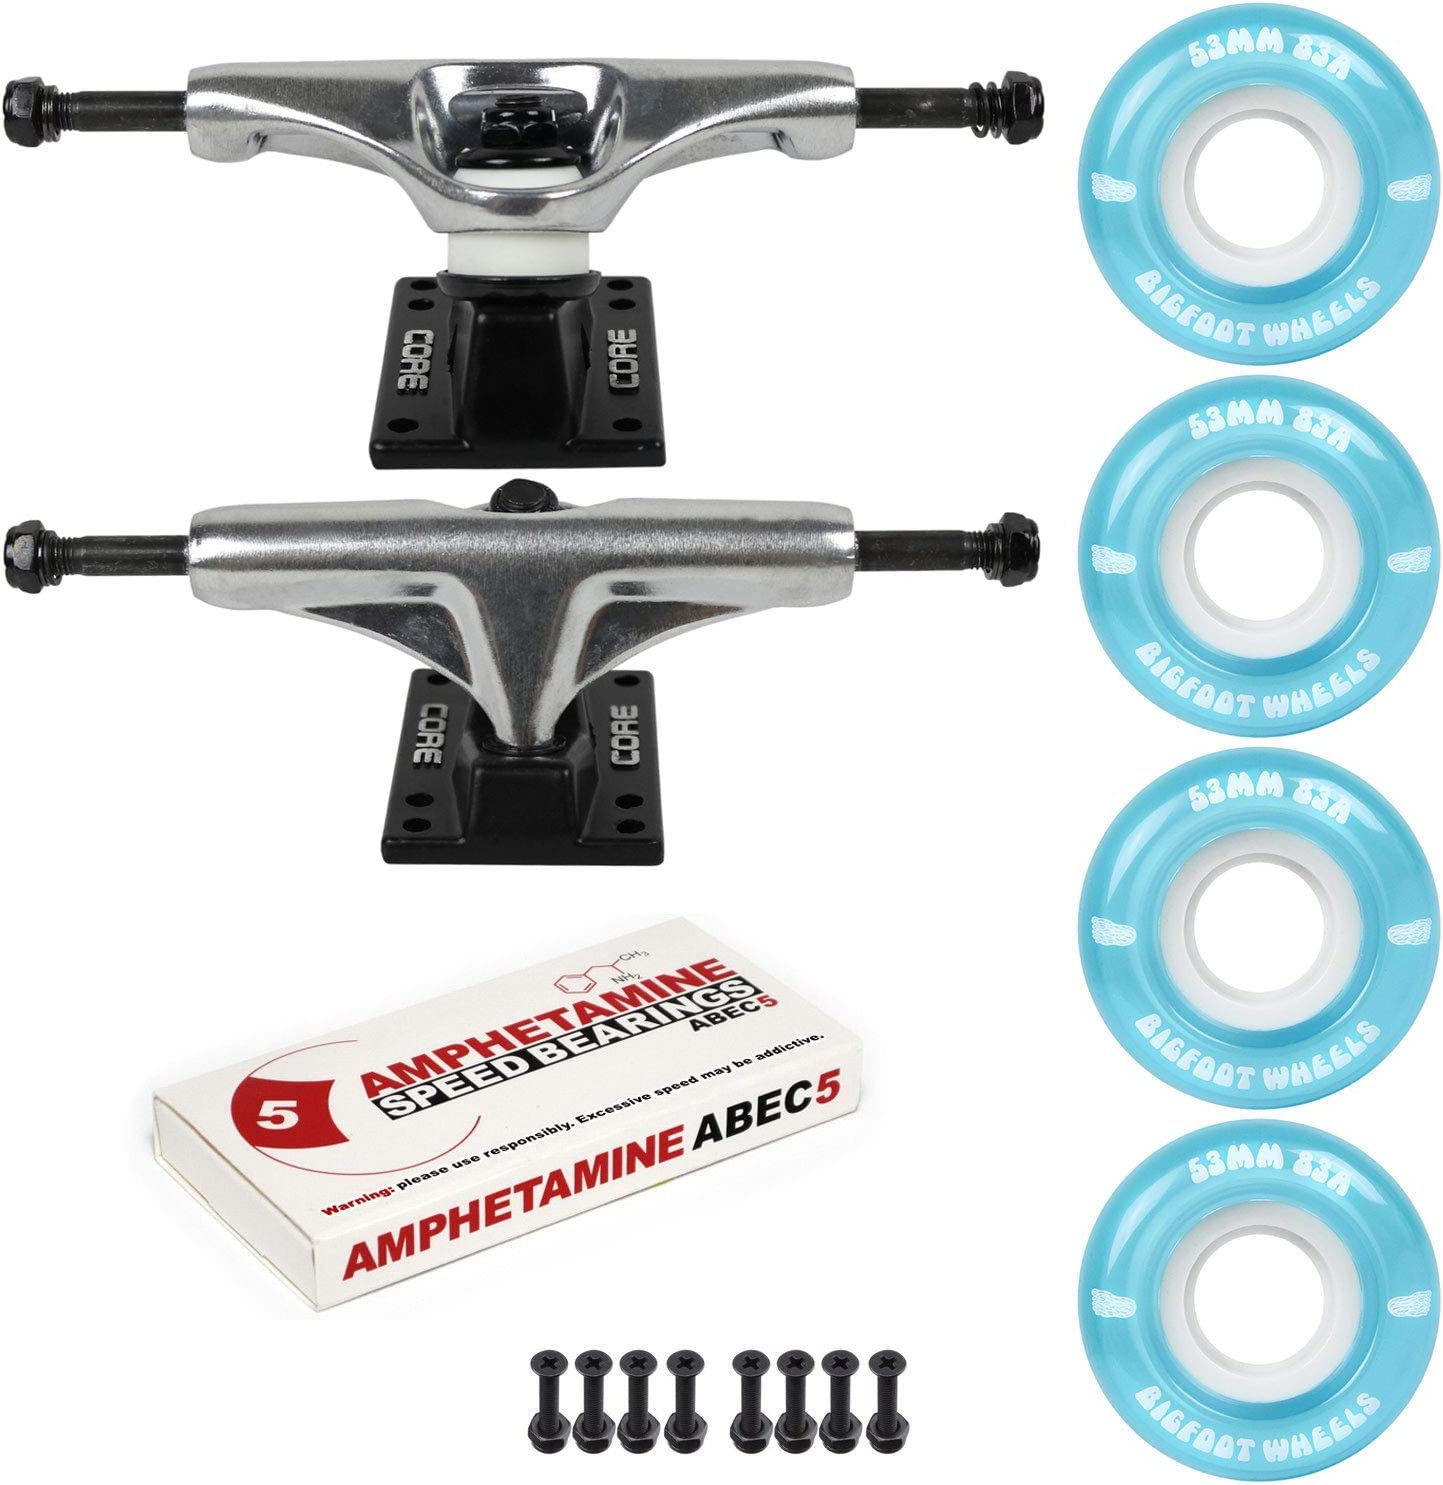 Skateboard Cruiser Trucks and Wheels New York Mall Outlet SALE - Soft A Package 83A